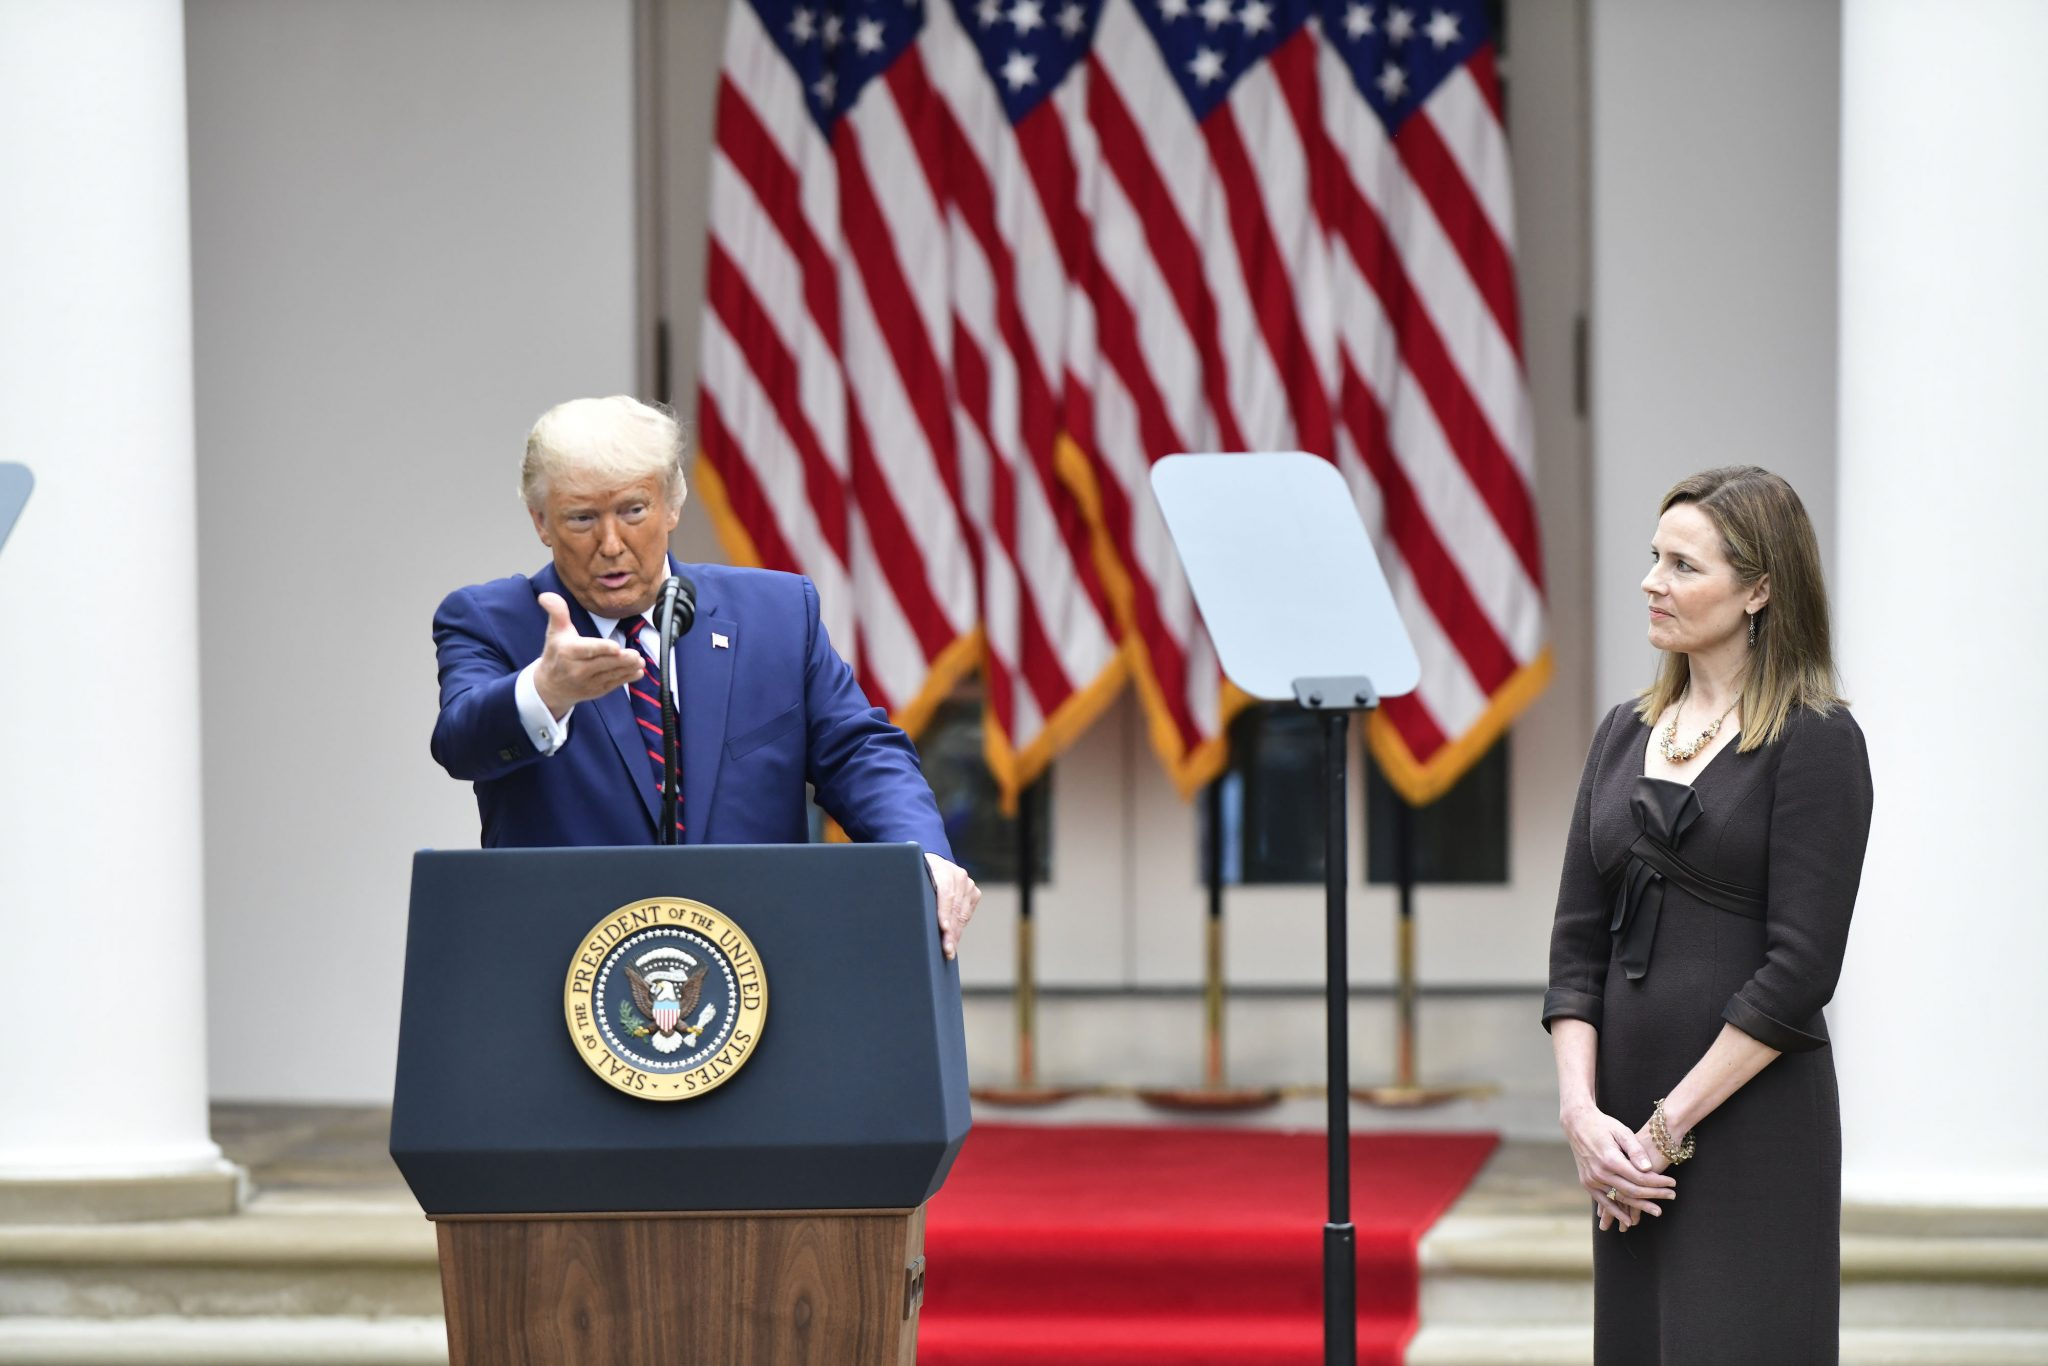 US-Präsident Donald Trump und Richterin Amy Coney Barrett Foto: Picture alliance/Capital Pictures